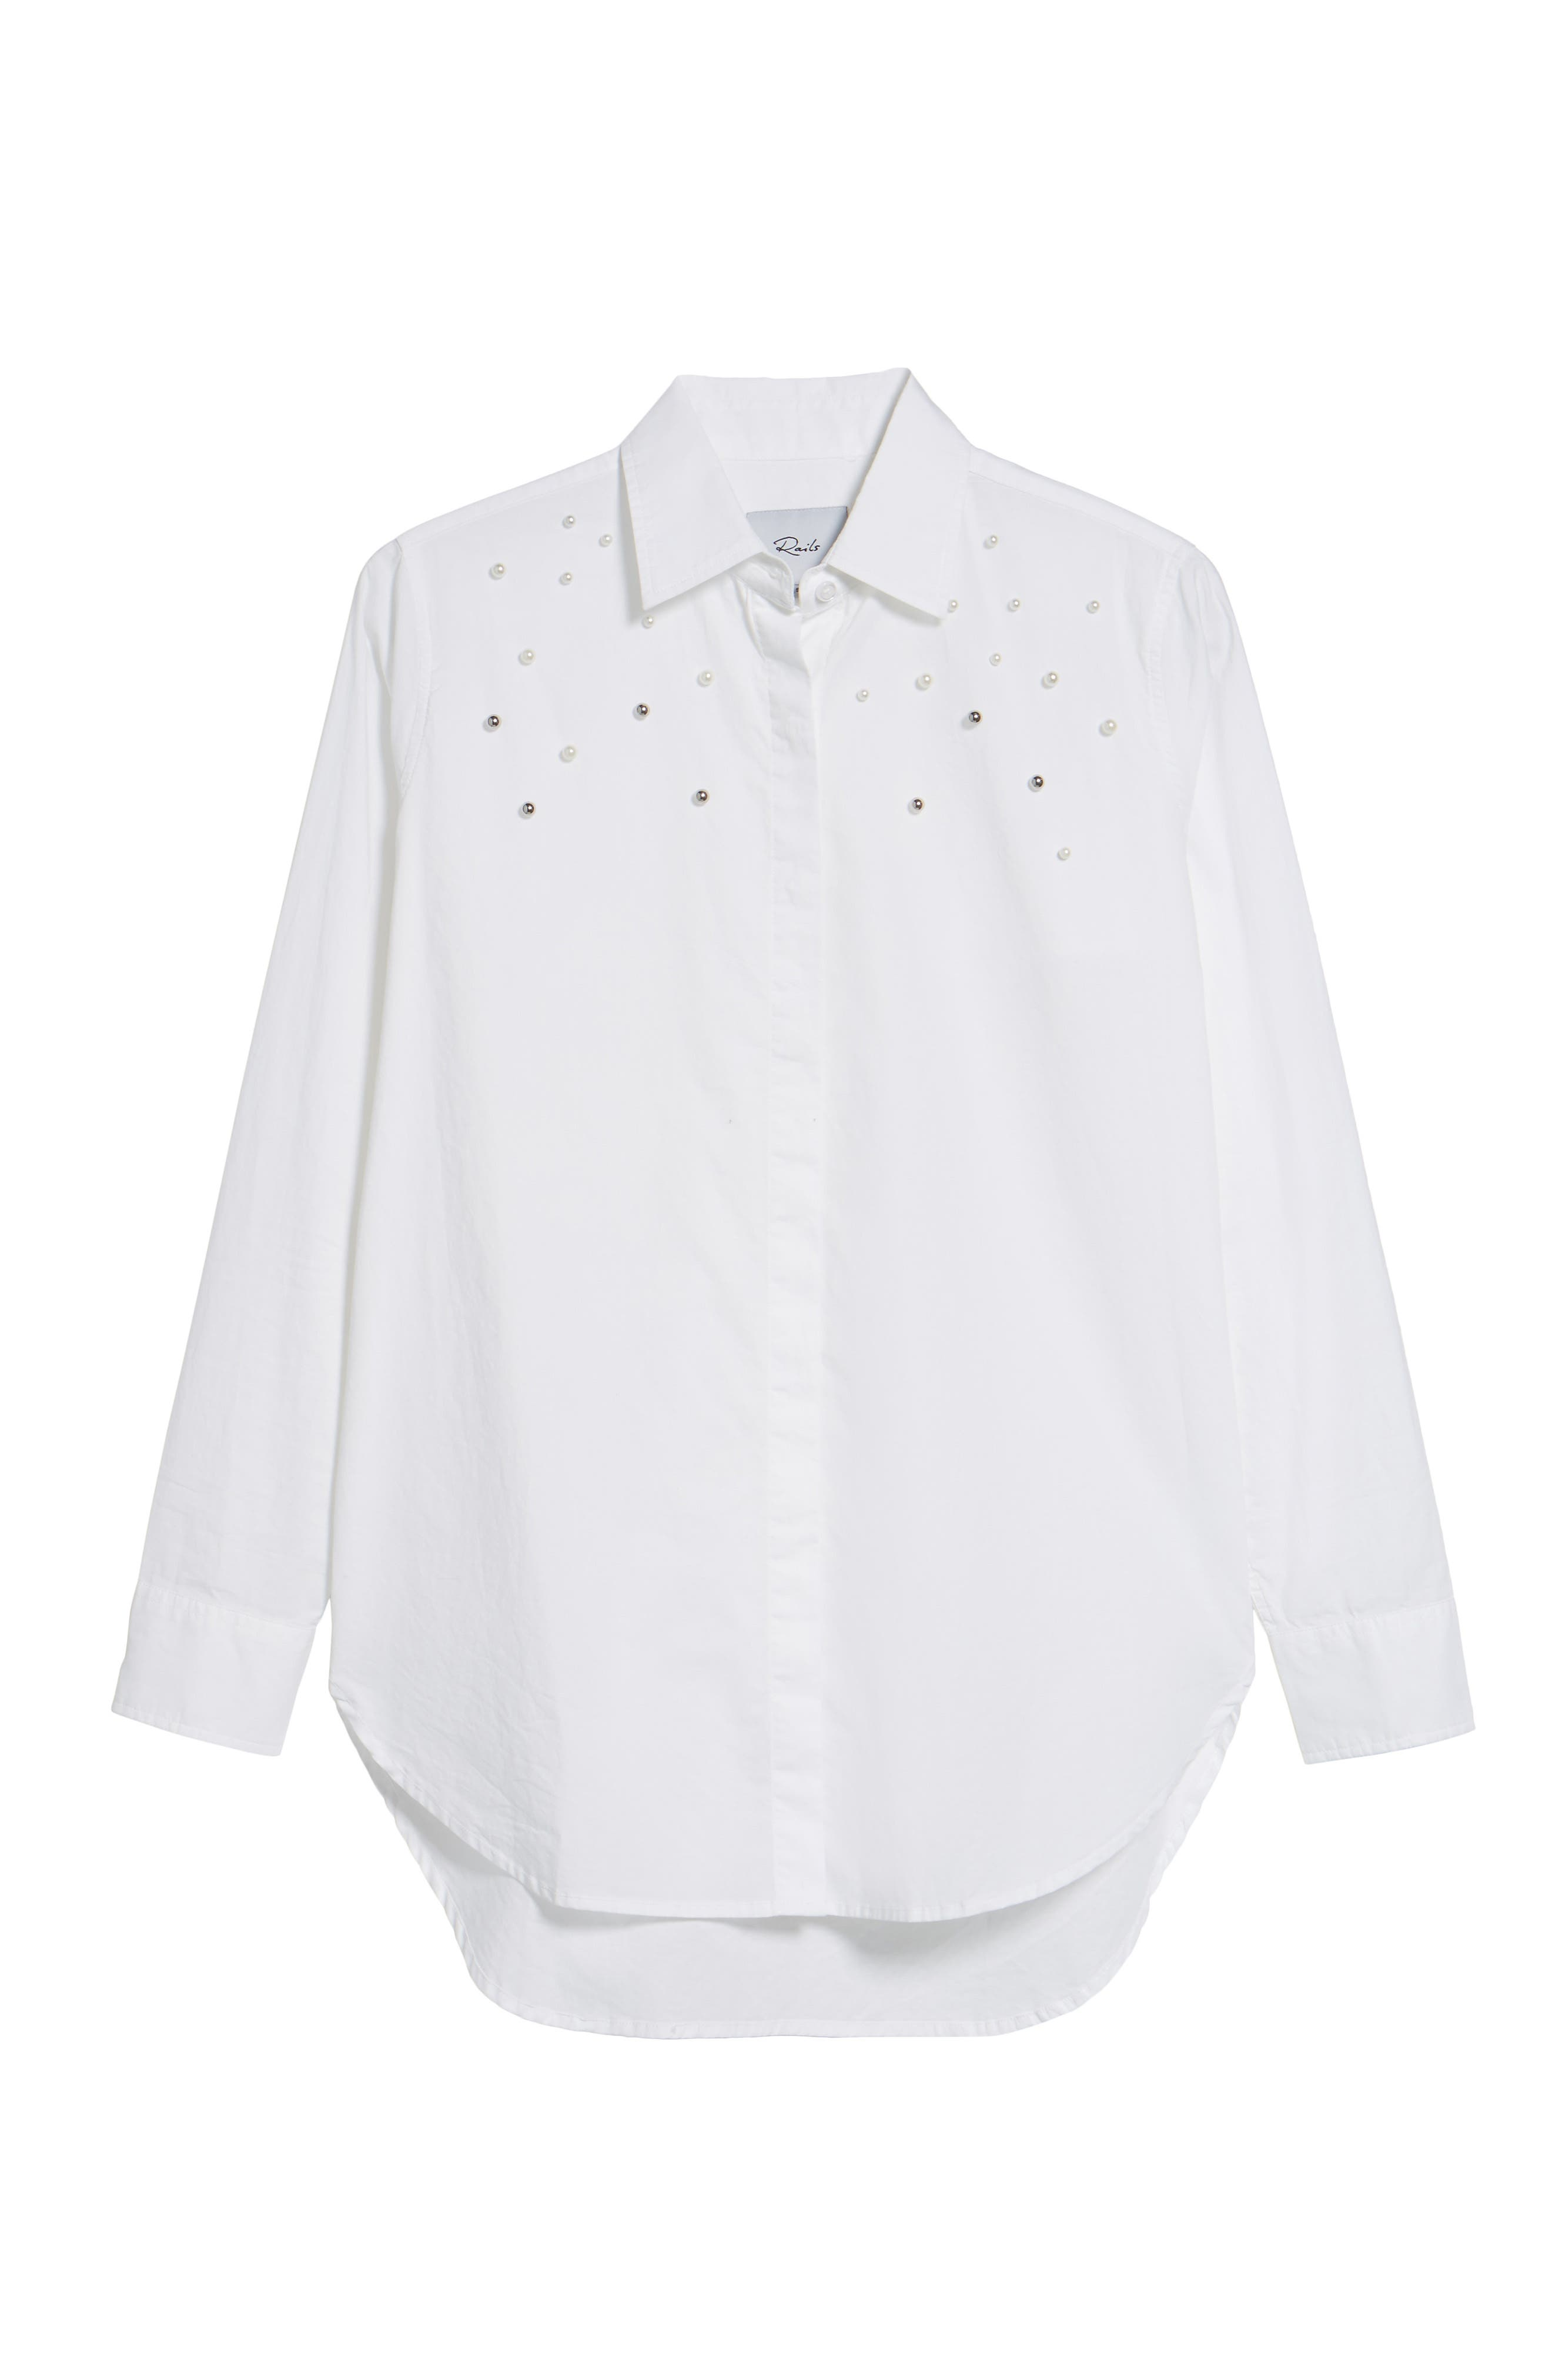 Taylor Beaded Shirt,                             Alternate thumbnail 6, color,                             100